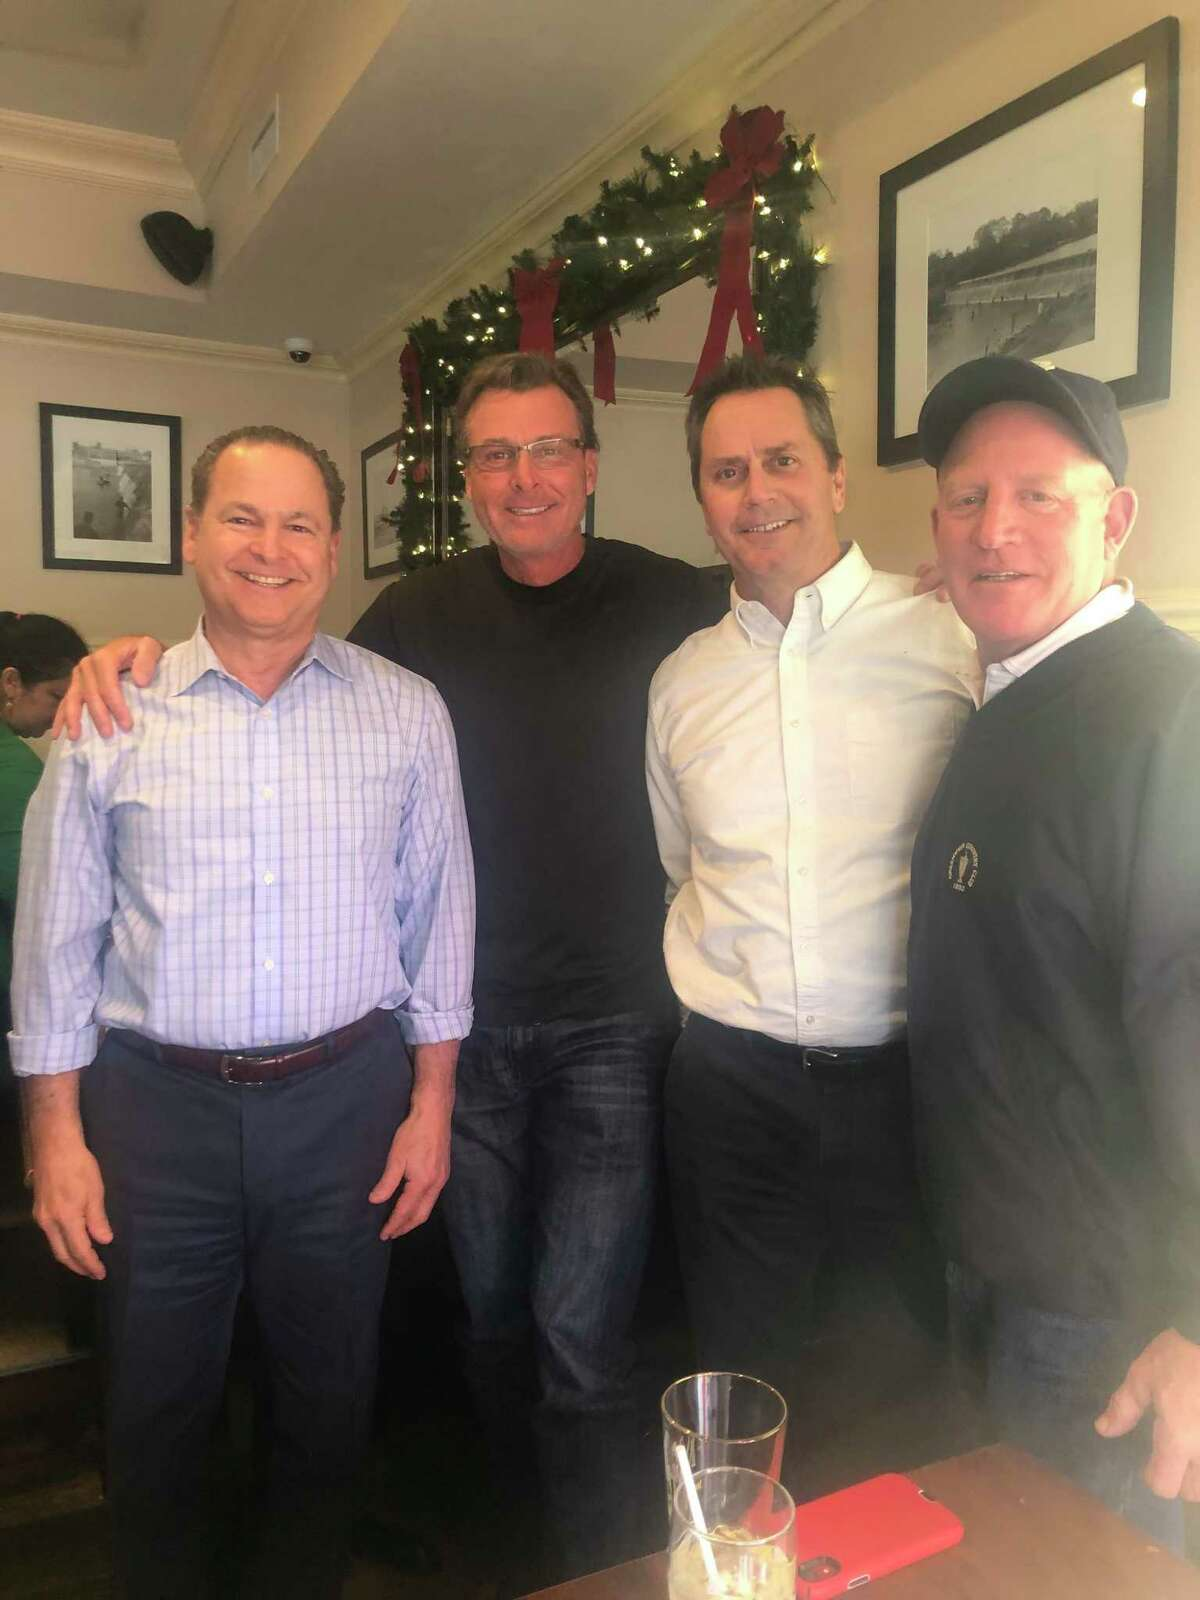 Former New York Mets champion Tim Teufel (second from left) with his friends Steve Gordon (left), Jim Kavanagh and Casey O'Brien at Caren's Cos Cobber in Greenwich last week.